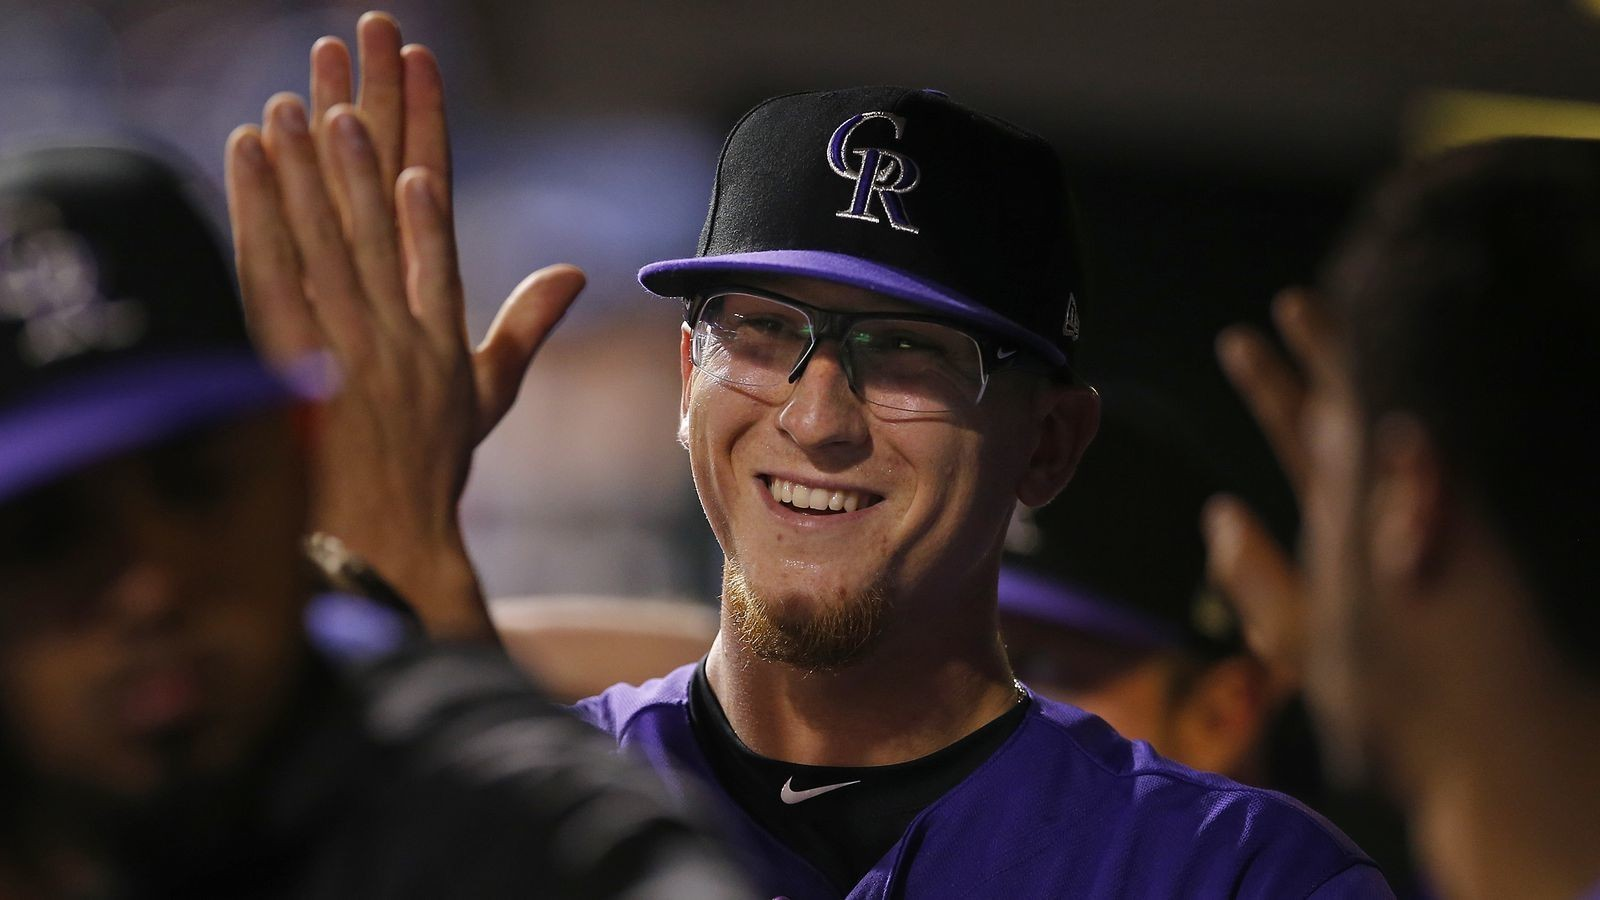 The Colorado Rockies are real good and Jeff Hoffman is the real deal